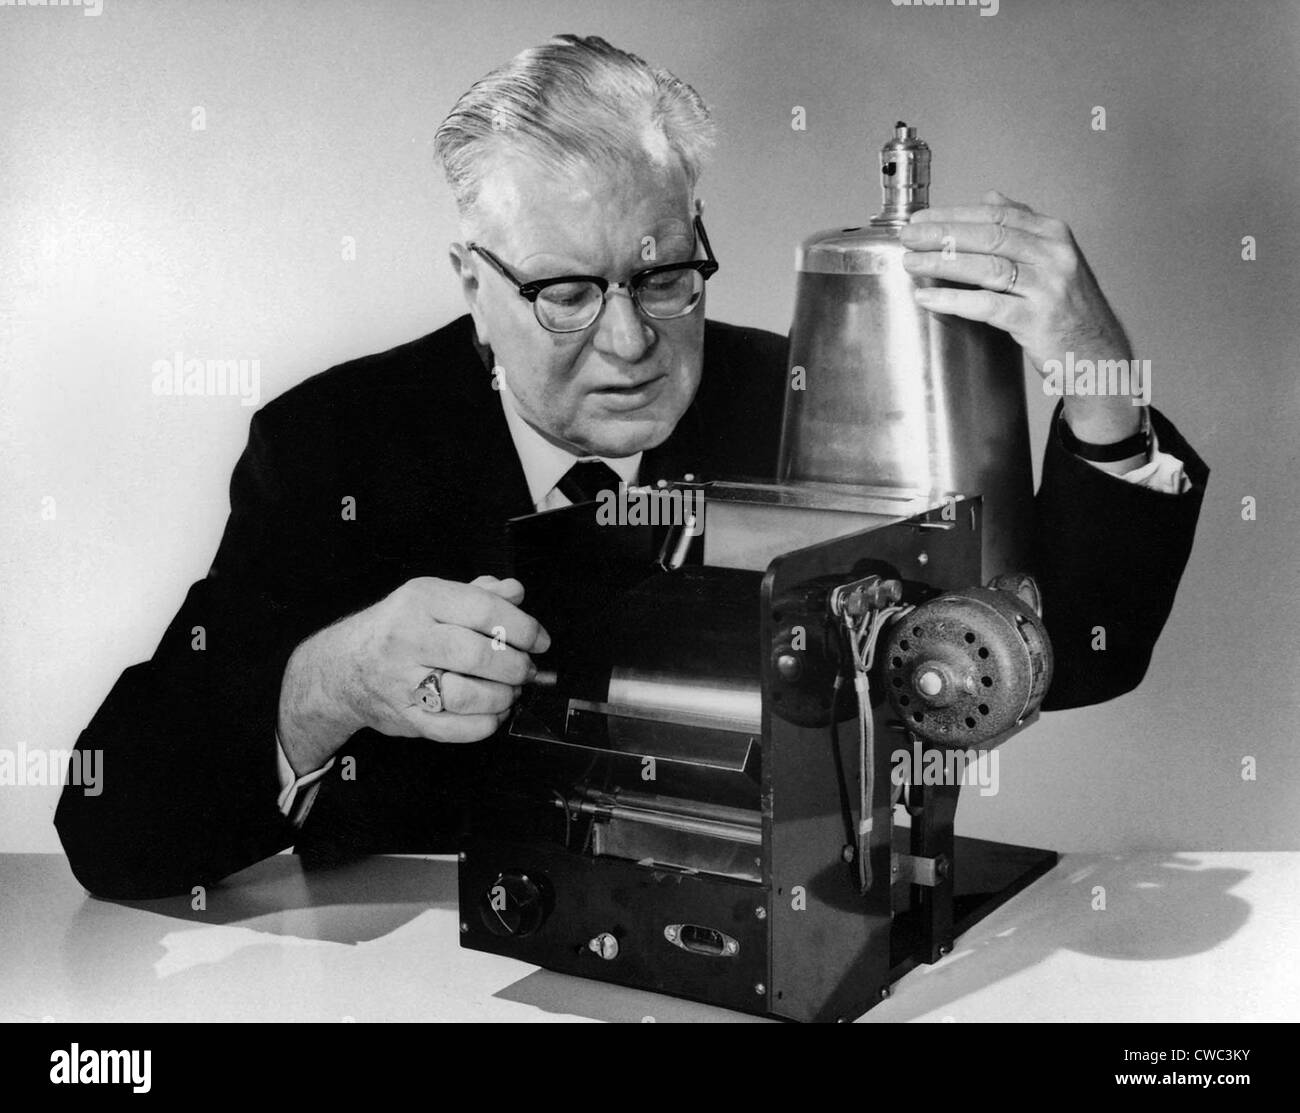 Chester Carlson 1906-1968 with the first model of his invention of 1938 that evolved over 20 years into the Xerox - Stock Image